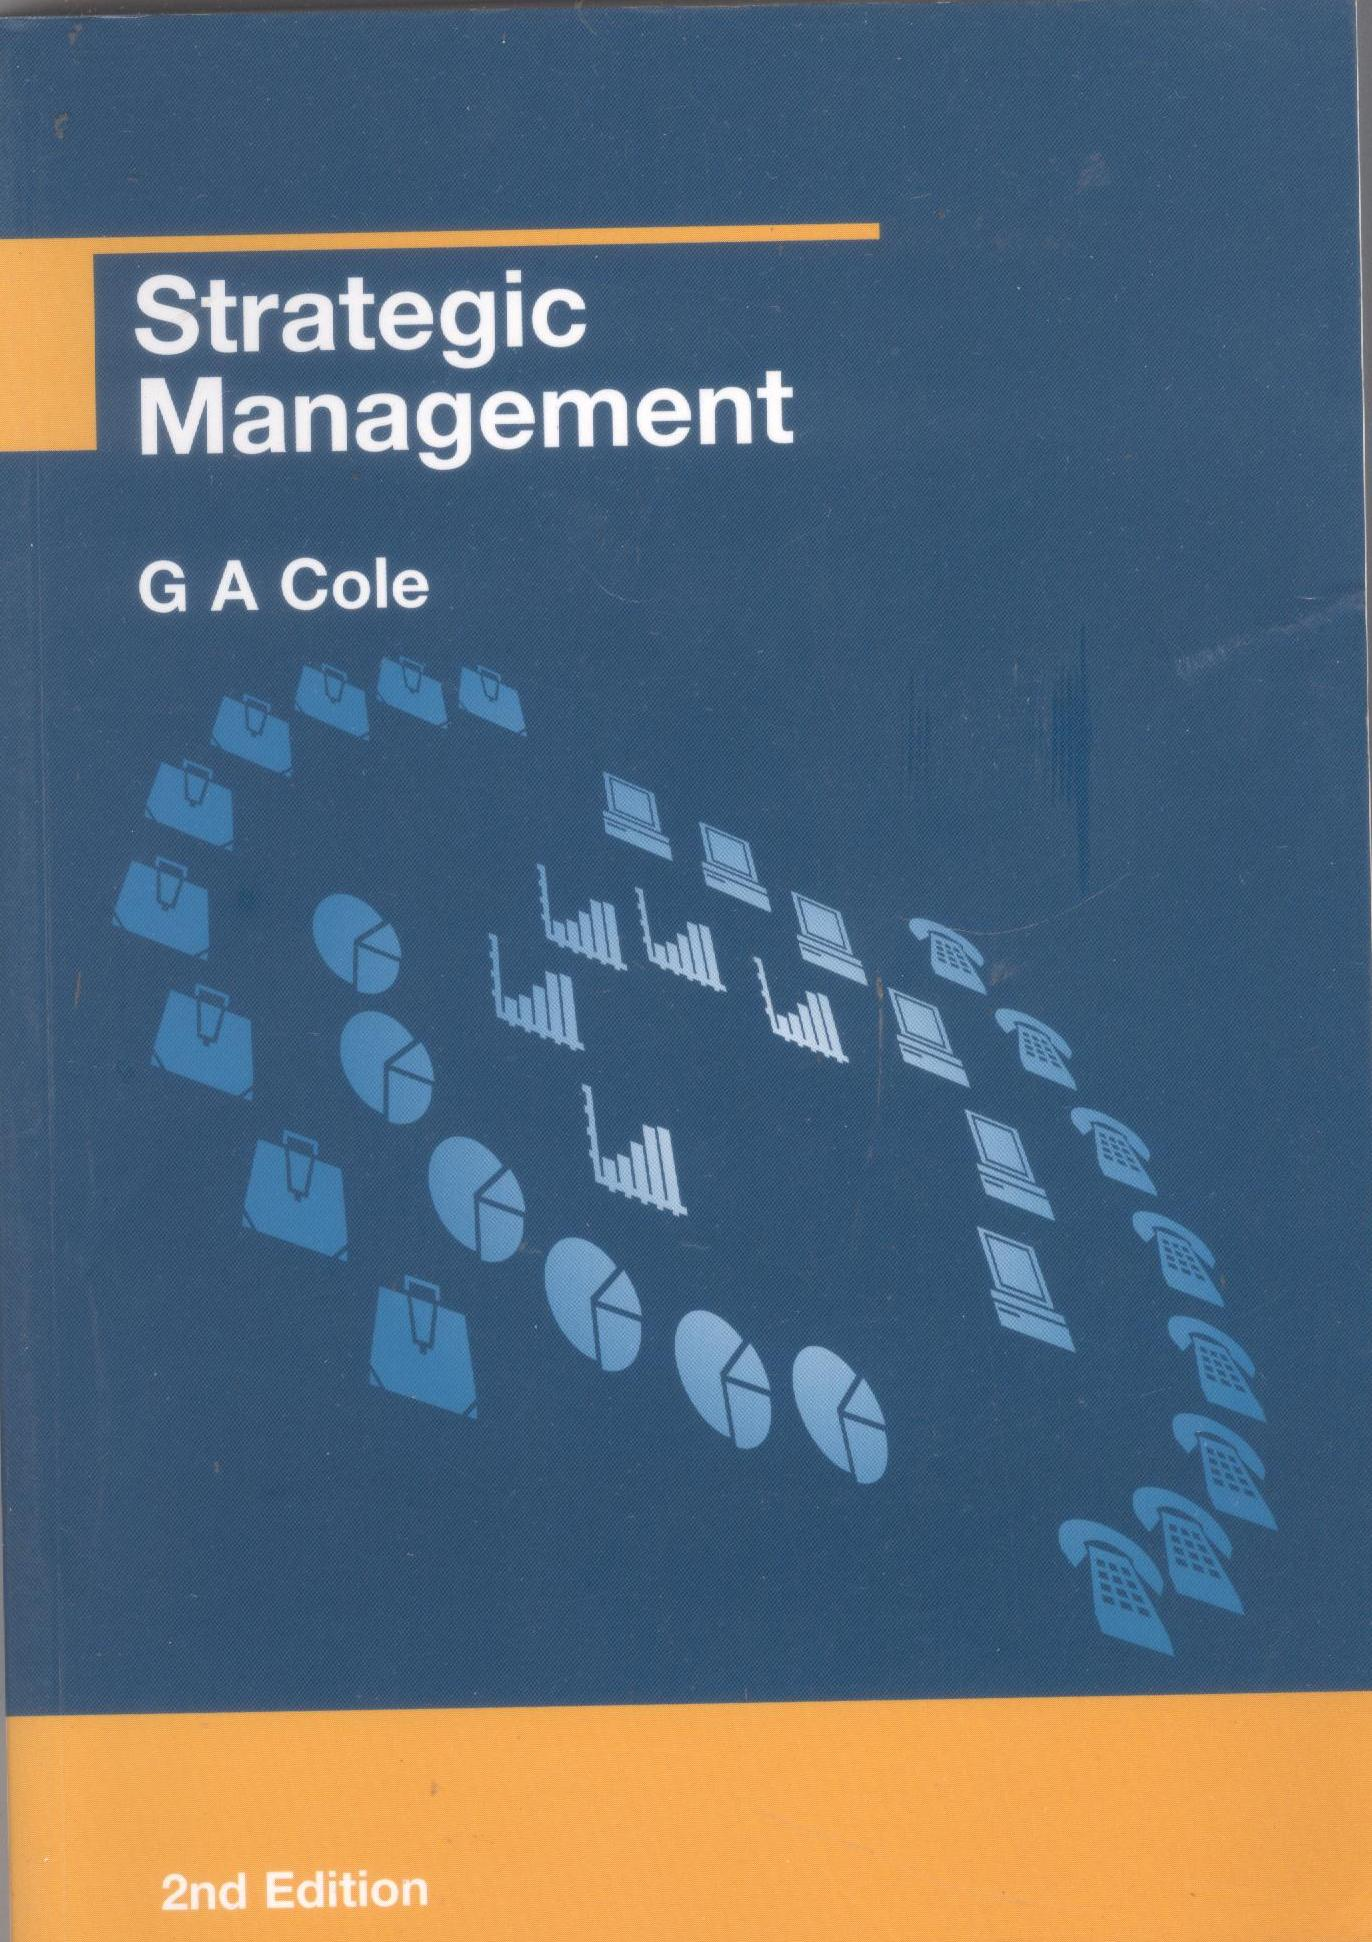 a strategic management theory To build strategic information radar requires executive management interact with key managers and staff on a continuous, scheduled basis to gather and evaluate strategically significant information of potential relevance to the strategic management of the organization.